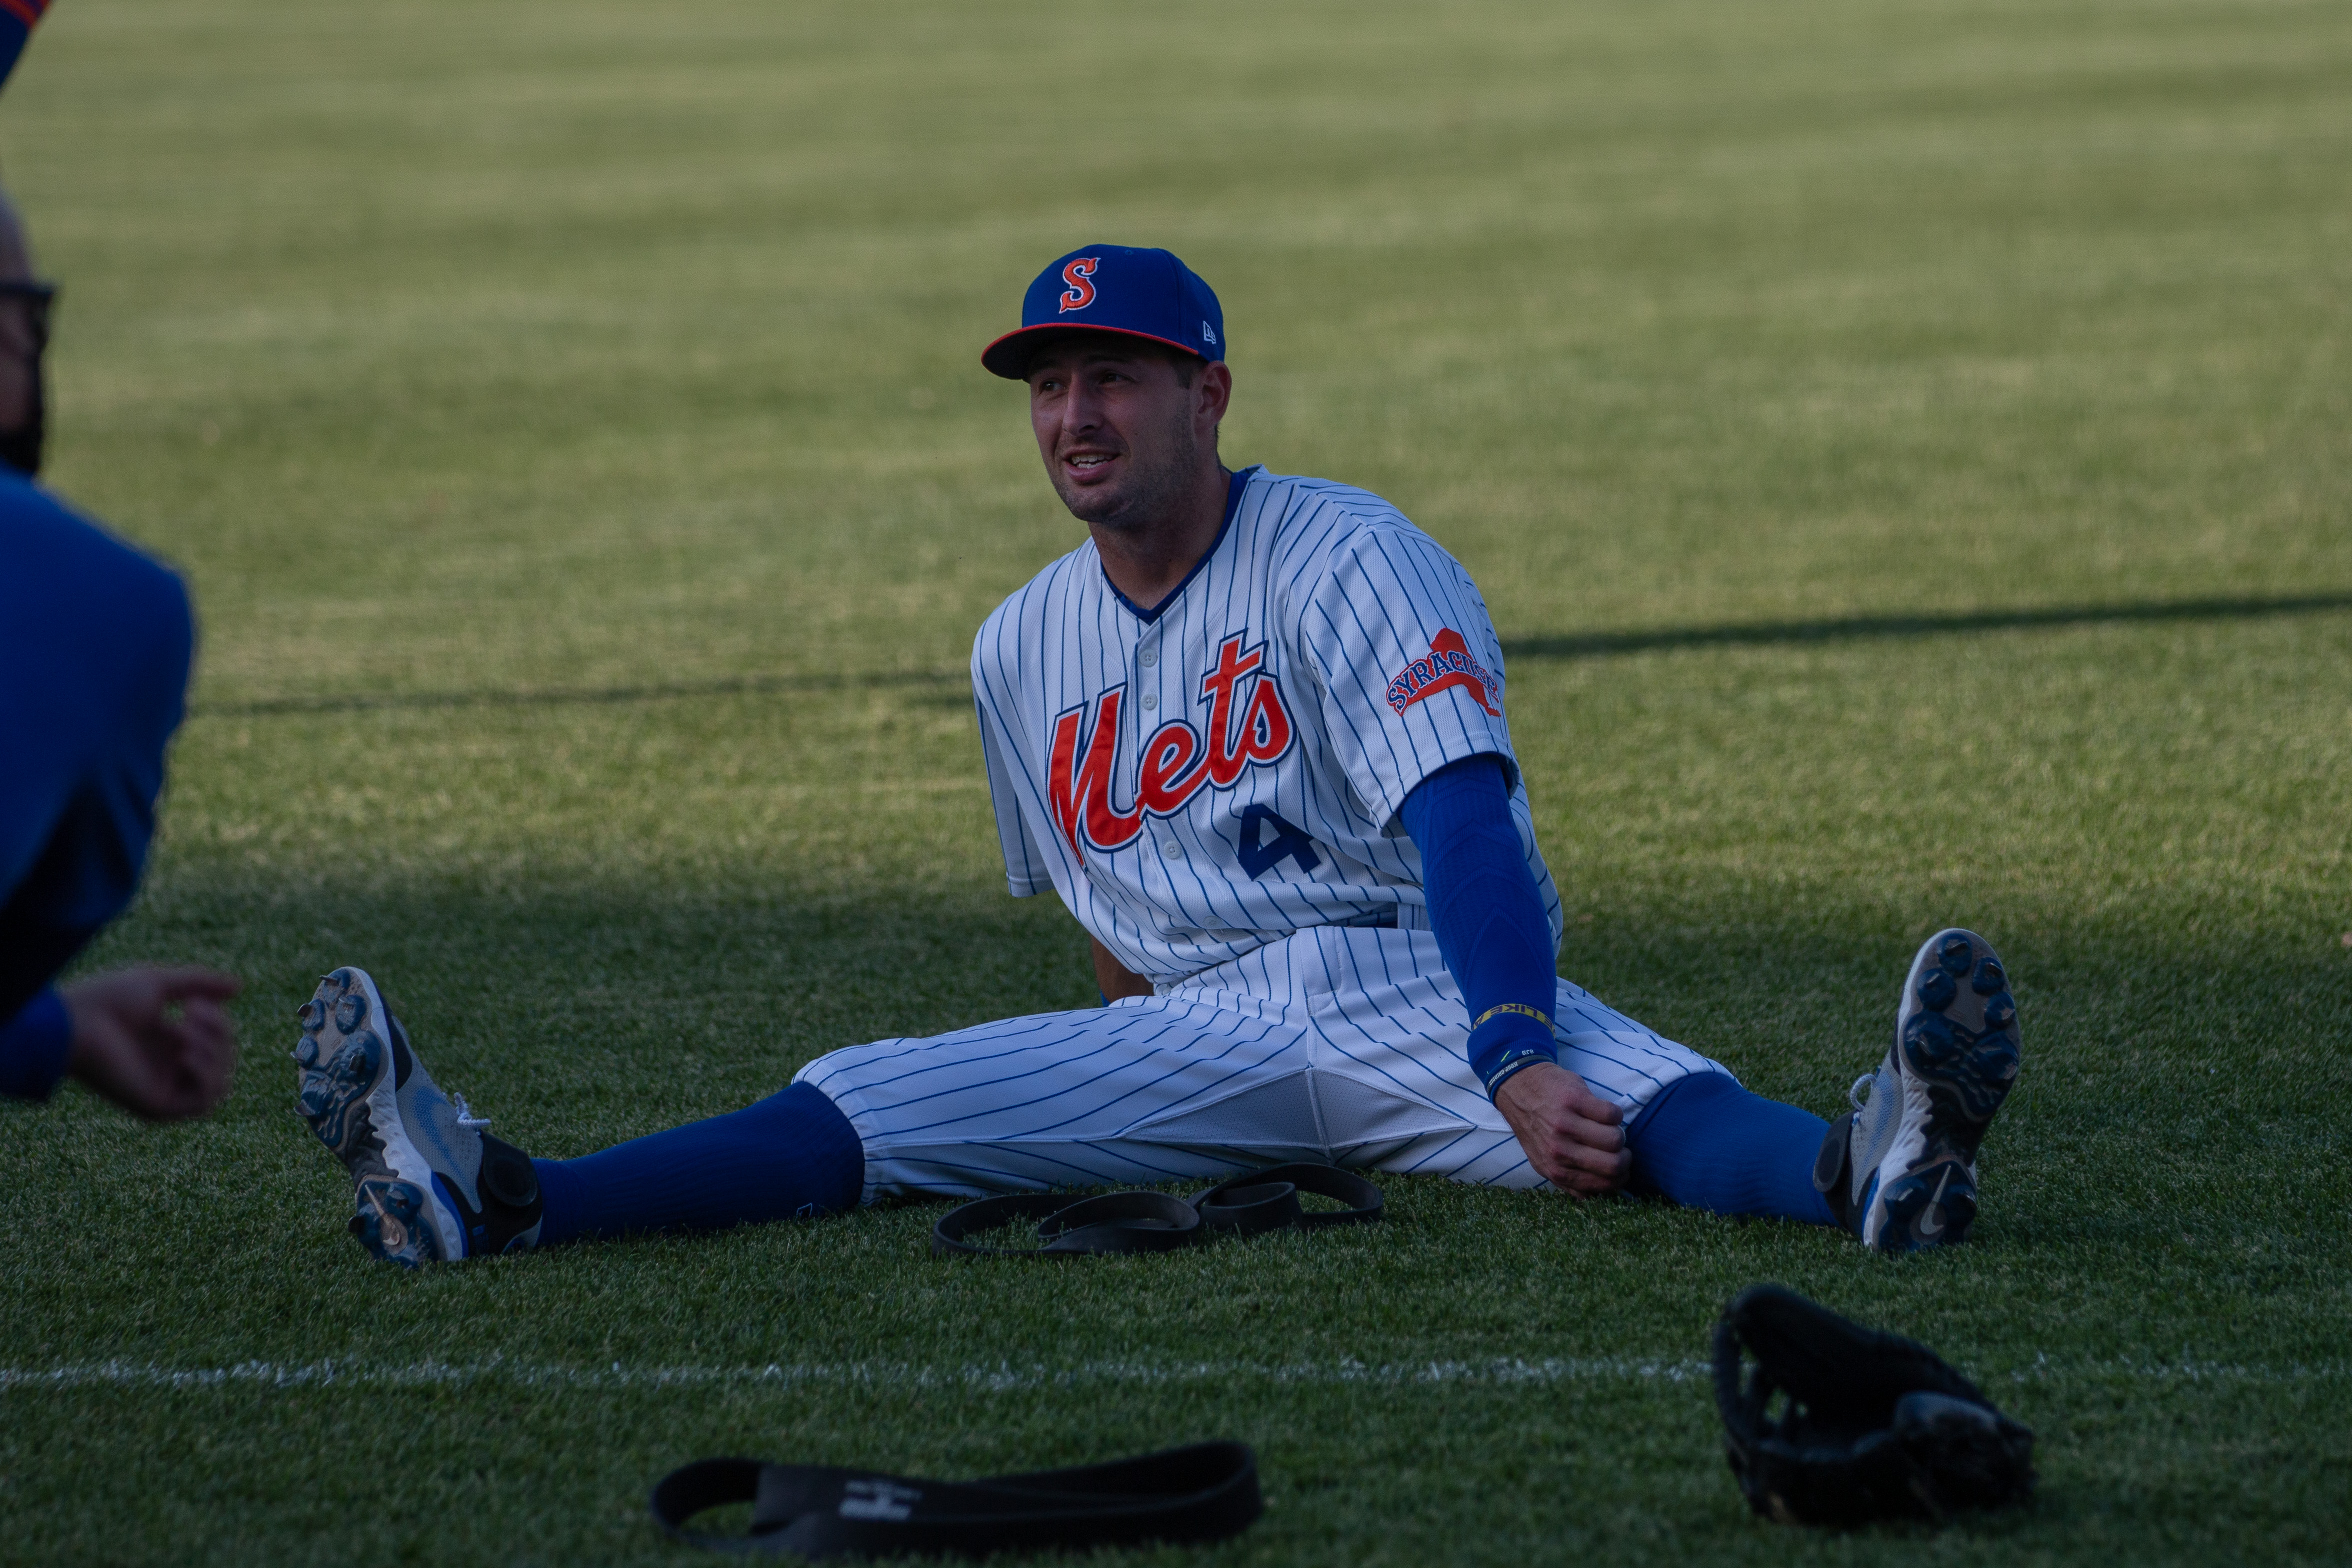 Cody Bohanek stretches before a Syracuse Mets game on May 20, 2021.